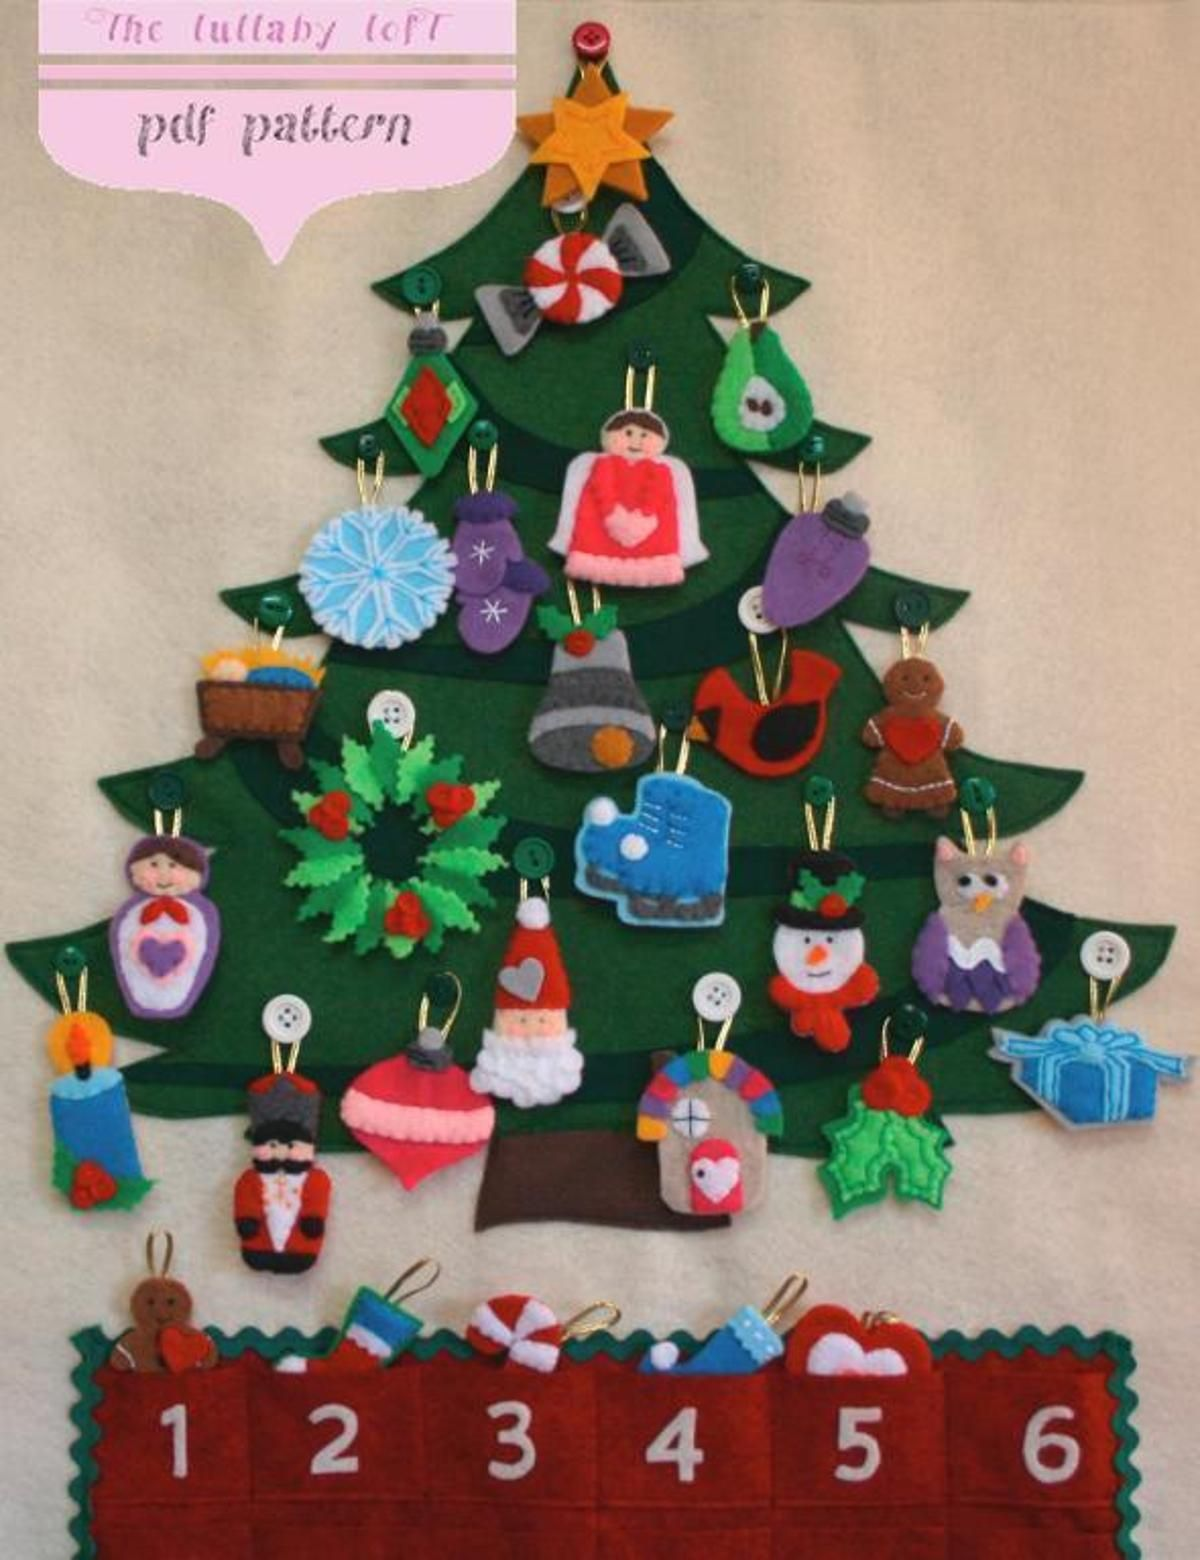 Christmas Tree Advent Calendar Countdown Christmas Tree Advent Calendar Felt Christmas Tree Advent Calendar Pattern